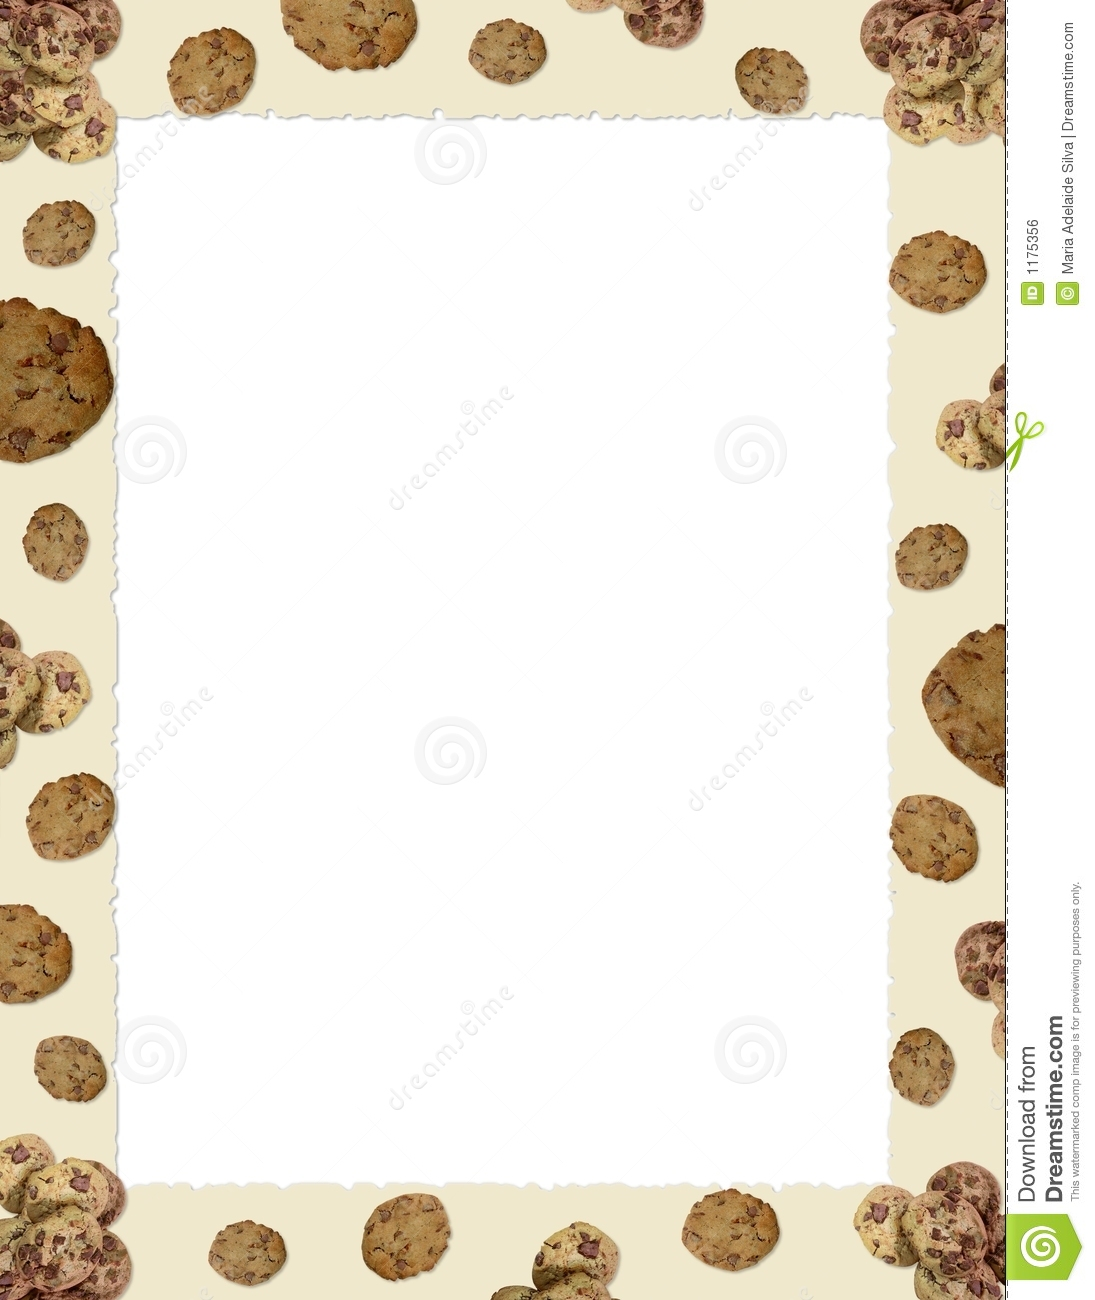 Choc Chip Cookie Border Stock Photo Image Of Stationary